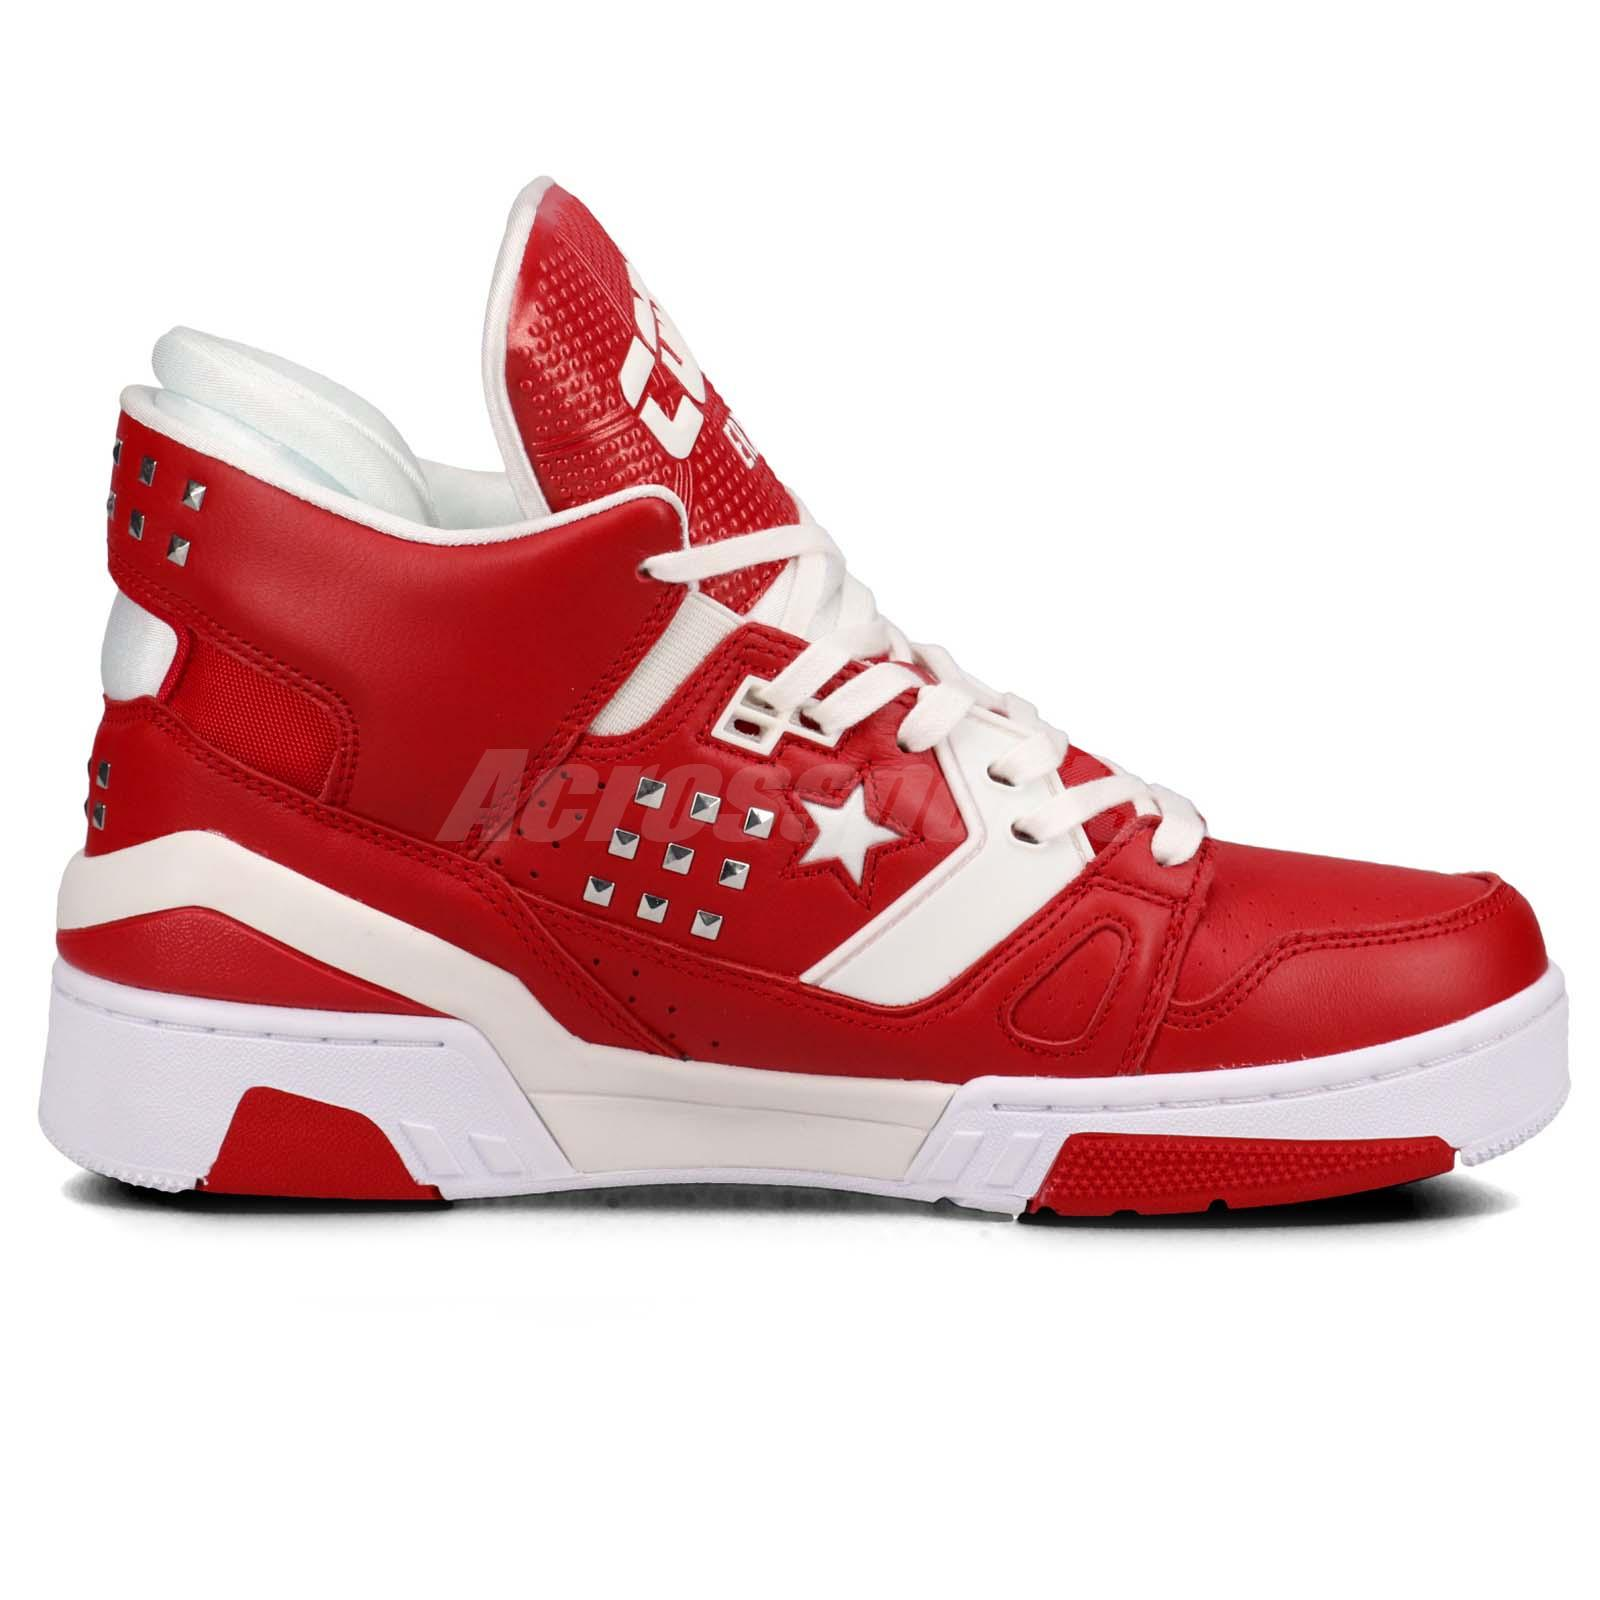 860200eac2d0be Converse ERX 260 Mid Just Don Metal Red White Men Basketball Shoes ...